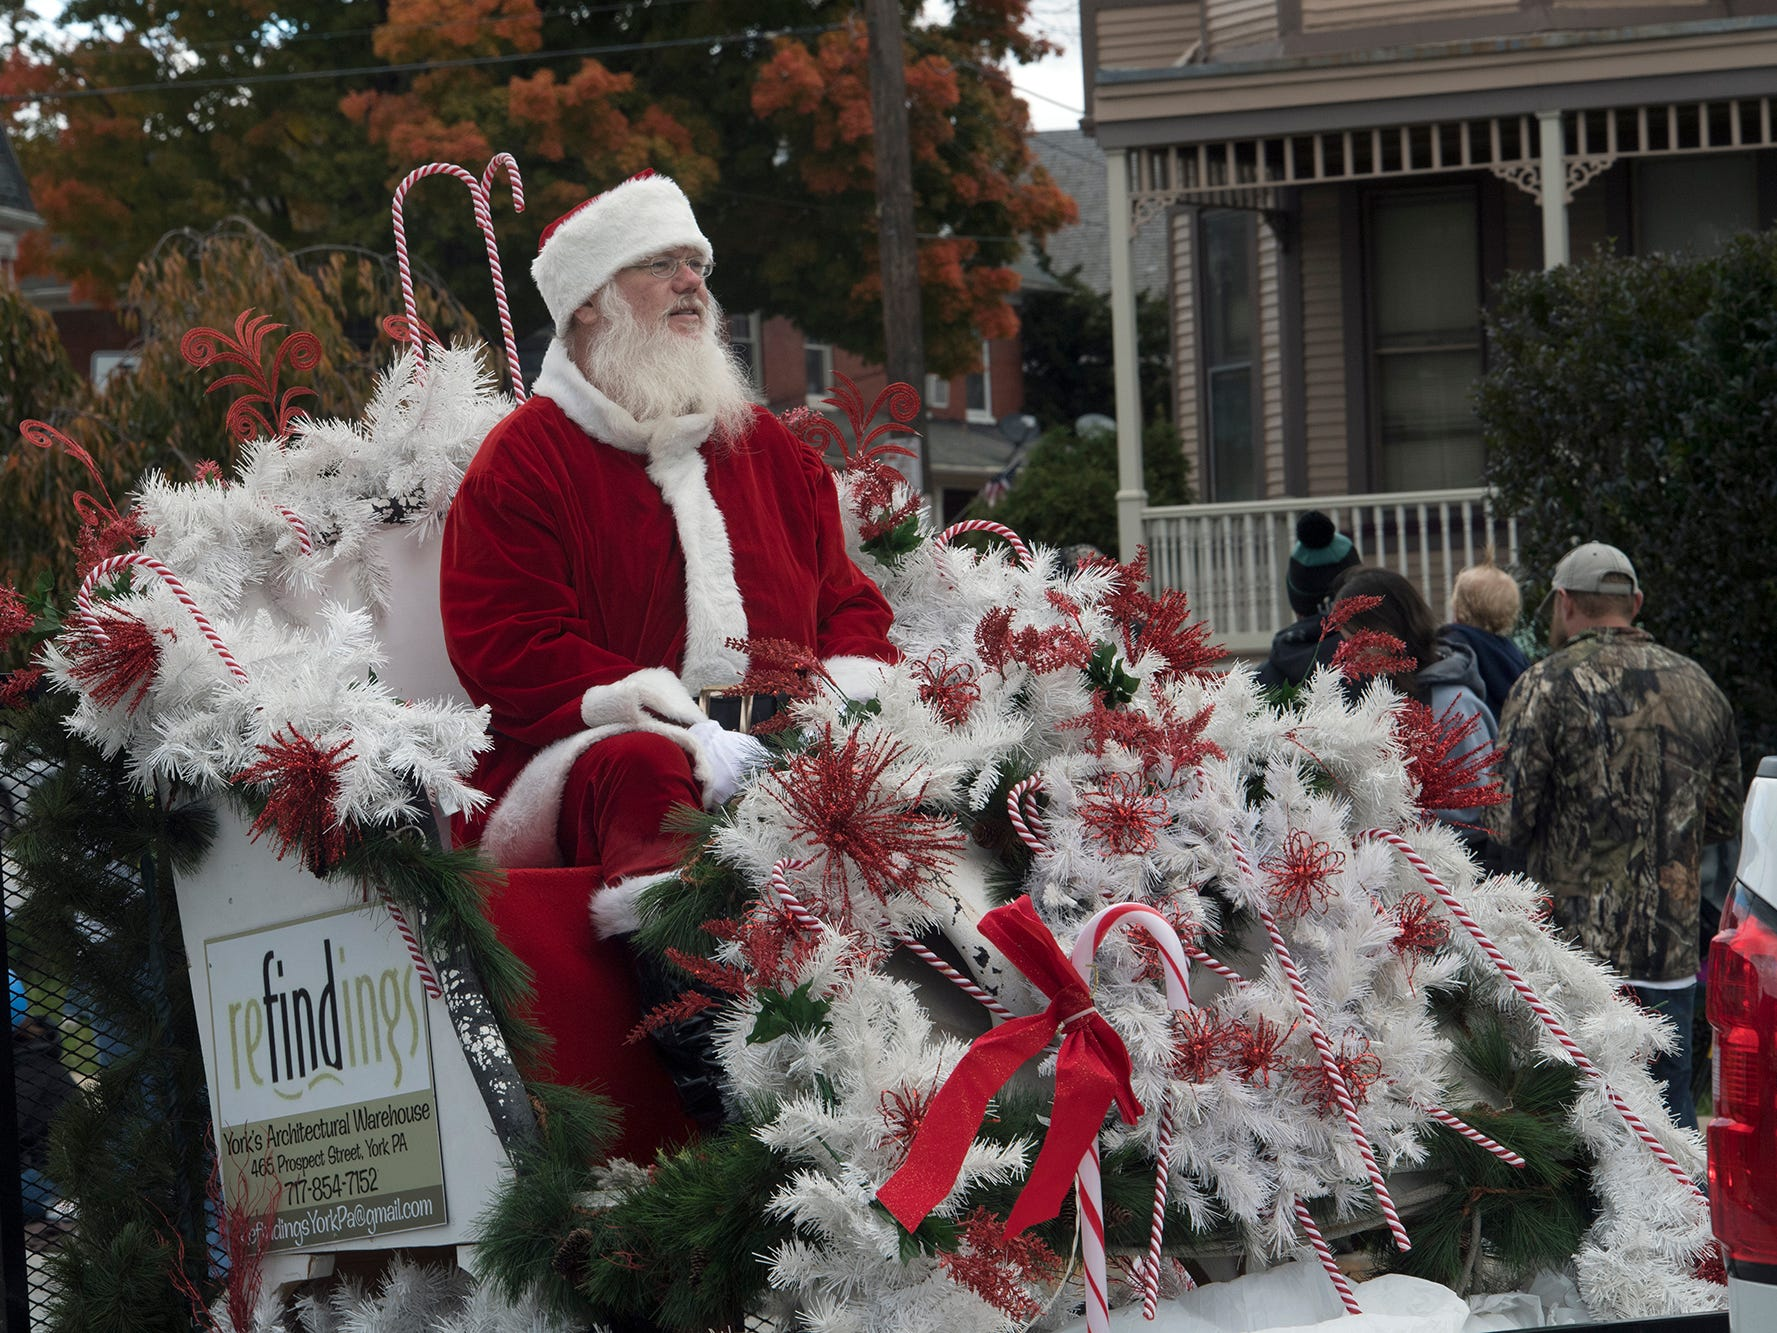 The refindings sleigh with Santa ends the parade the 69th Annual York Halloween Parade presented by York Traditions Bank Sunday in York.